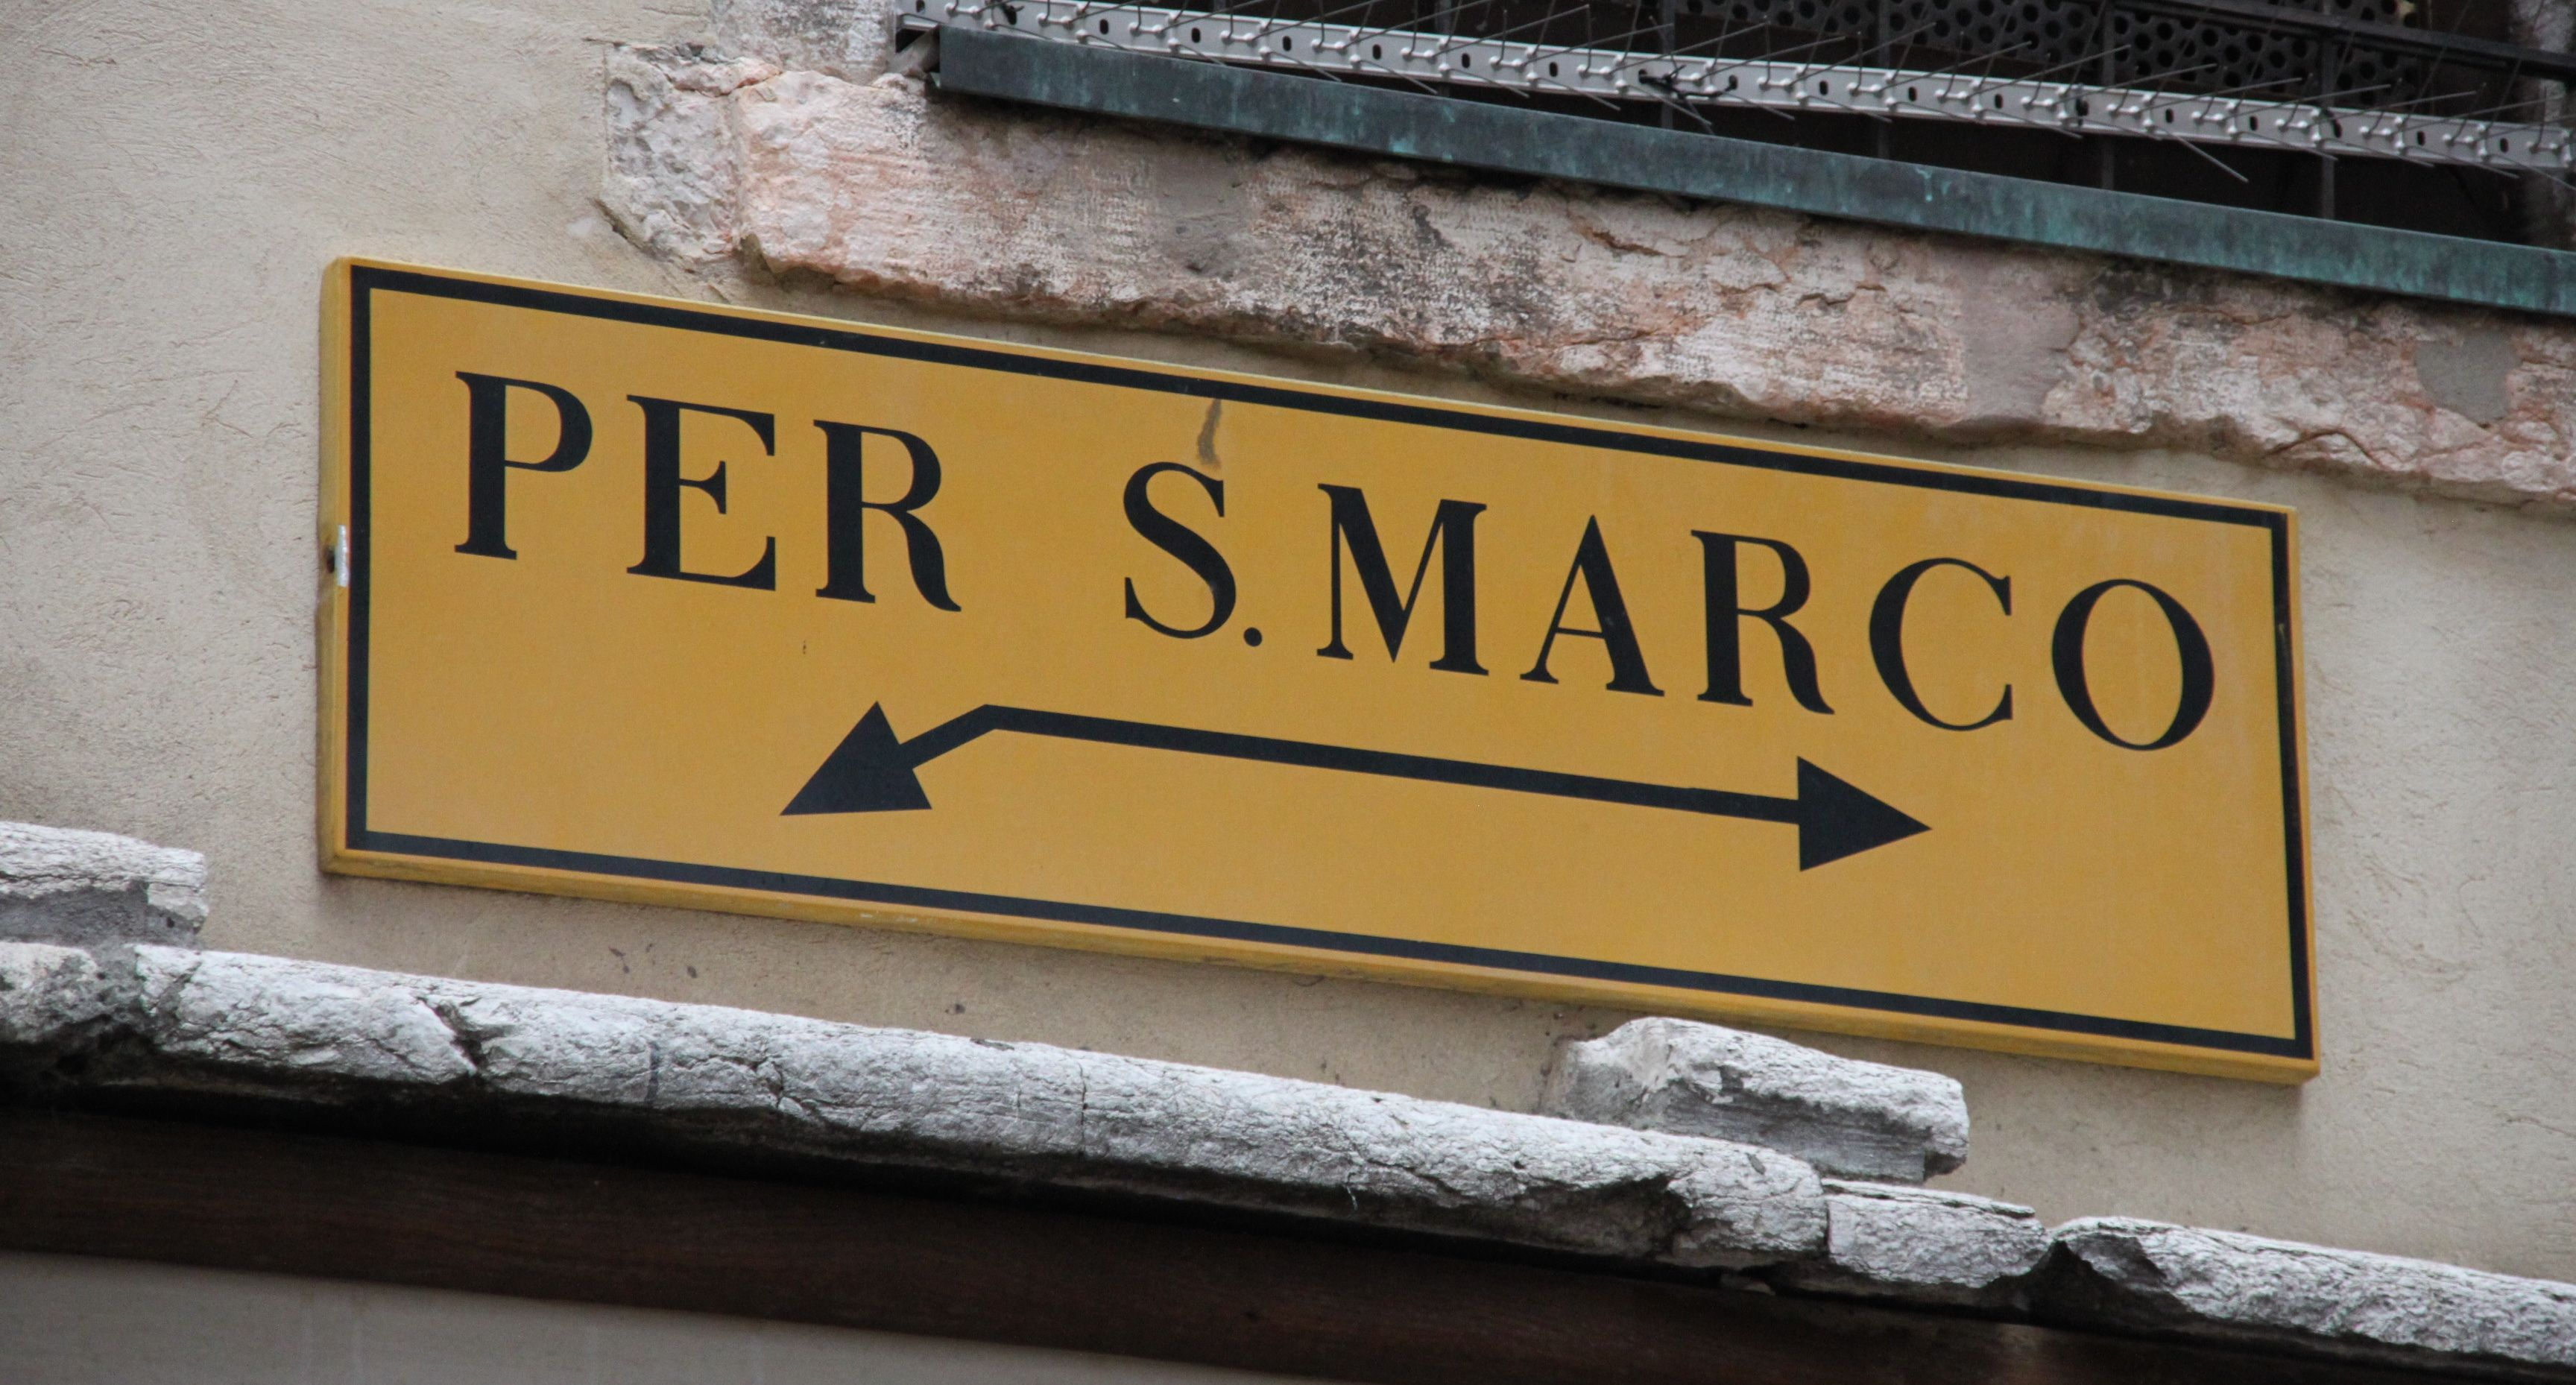 Every road leads to San Marco!